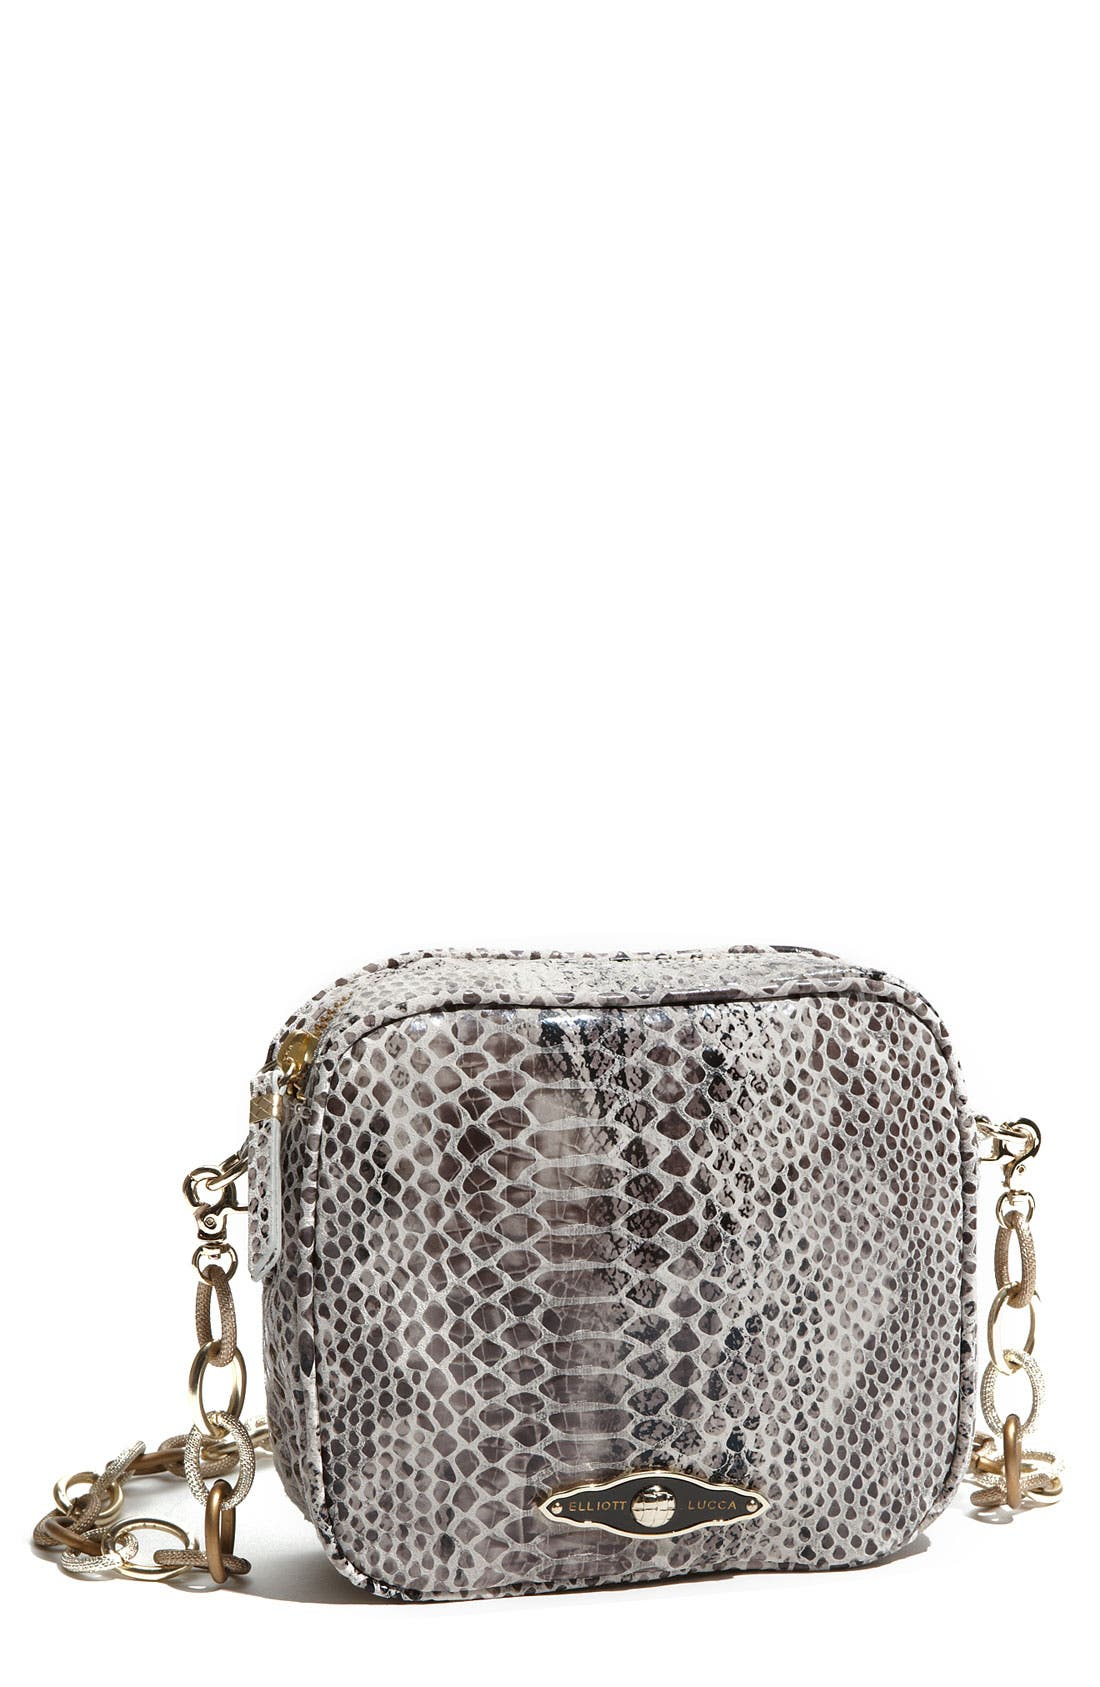 Alternate Image 1 Selected - Elliott Lucca 'Millana Camera' Snake Embossed Crossbody Bag